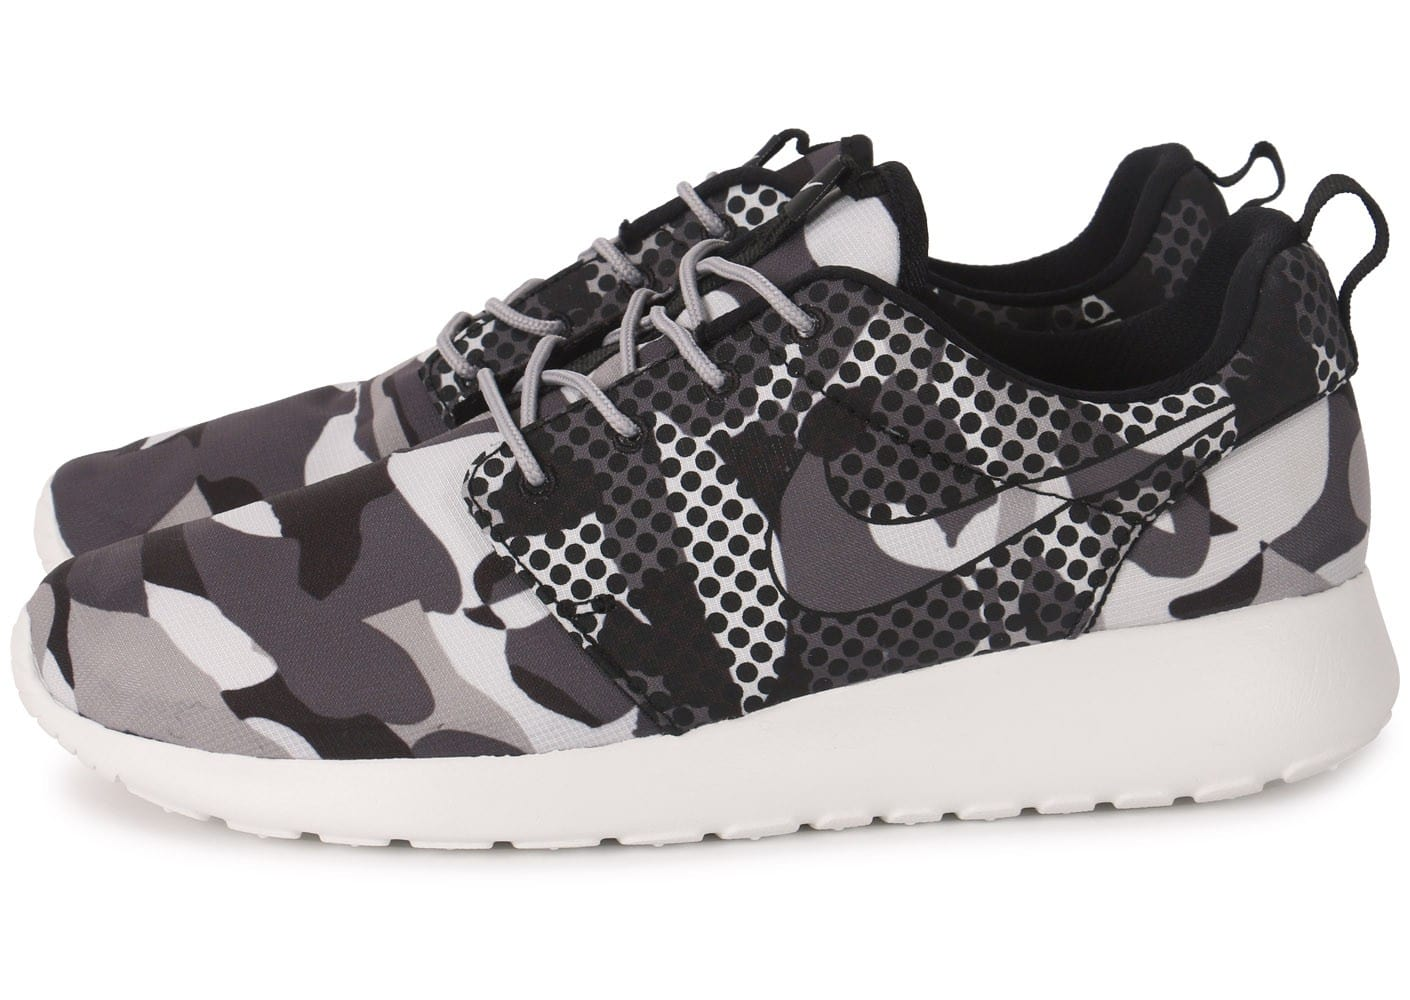 Nike One Roshe Print Camo Homme Chausport Grise Baskets Chaussures CrdexoB